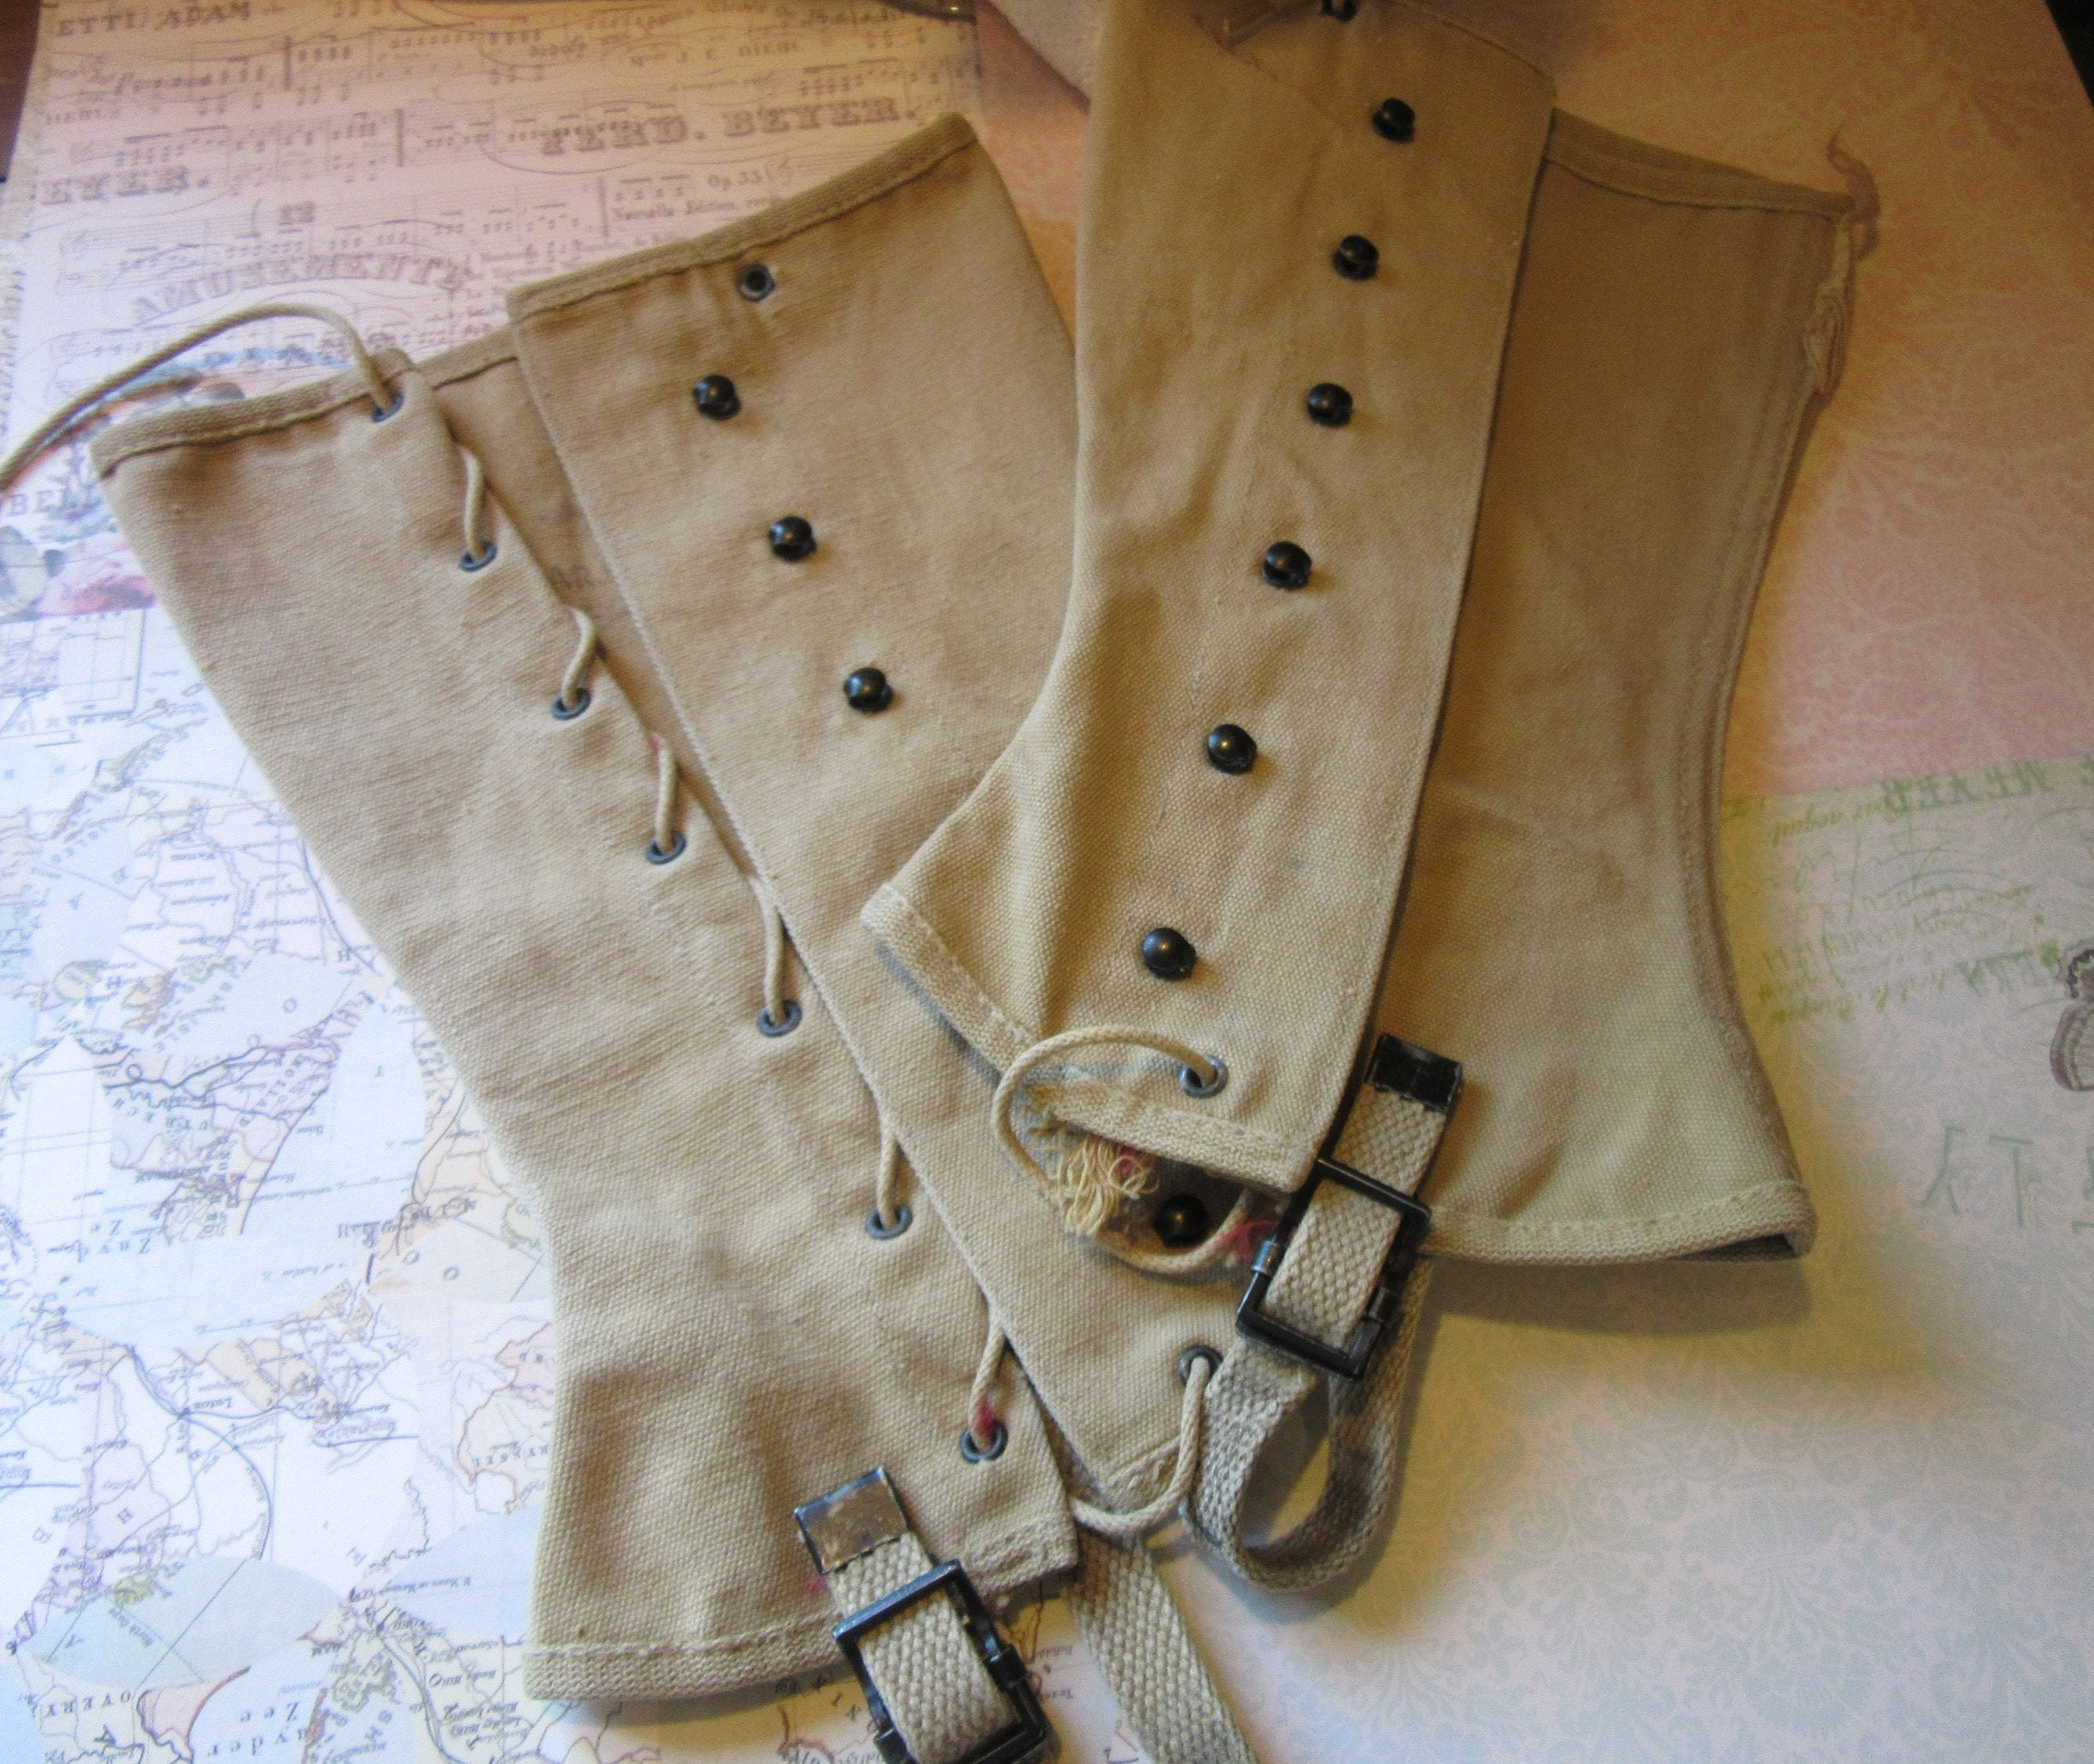 Spats, Gaiters, Puttees – Vintage Shoes Covers Wwii Canvas Leggings Us Navy 1940S - Named  Dated Usn Military Spats Vintage Naval Ww2 Uniform Boot Protectors 40S $48.00 AT vintagedancer.com